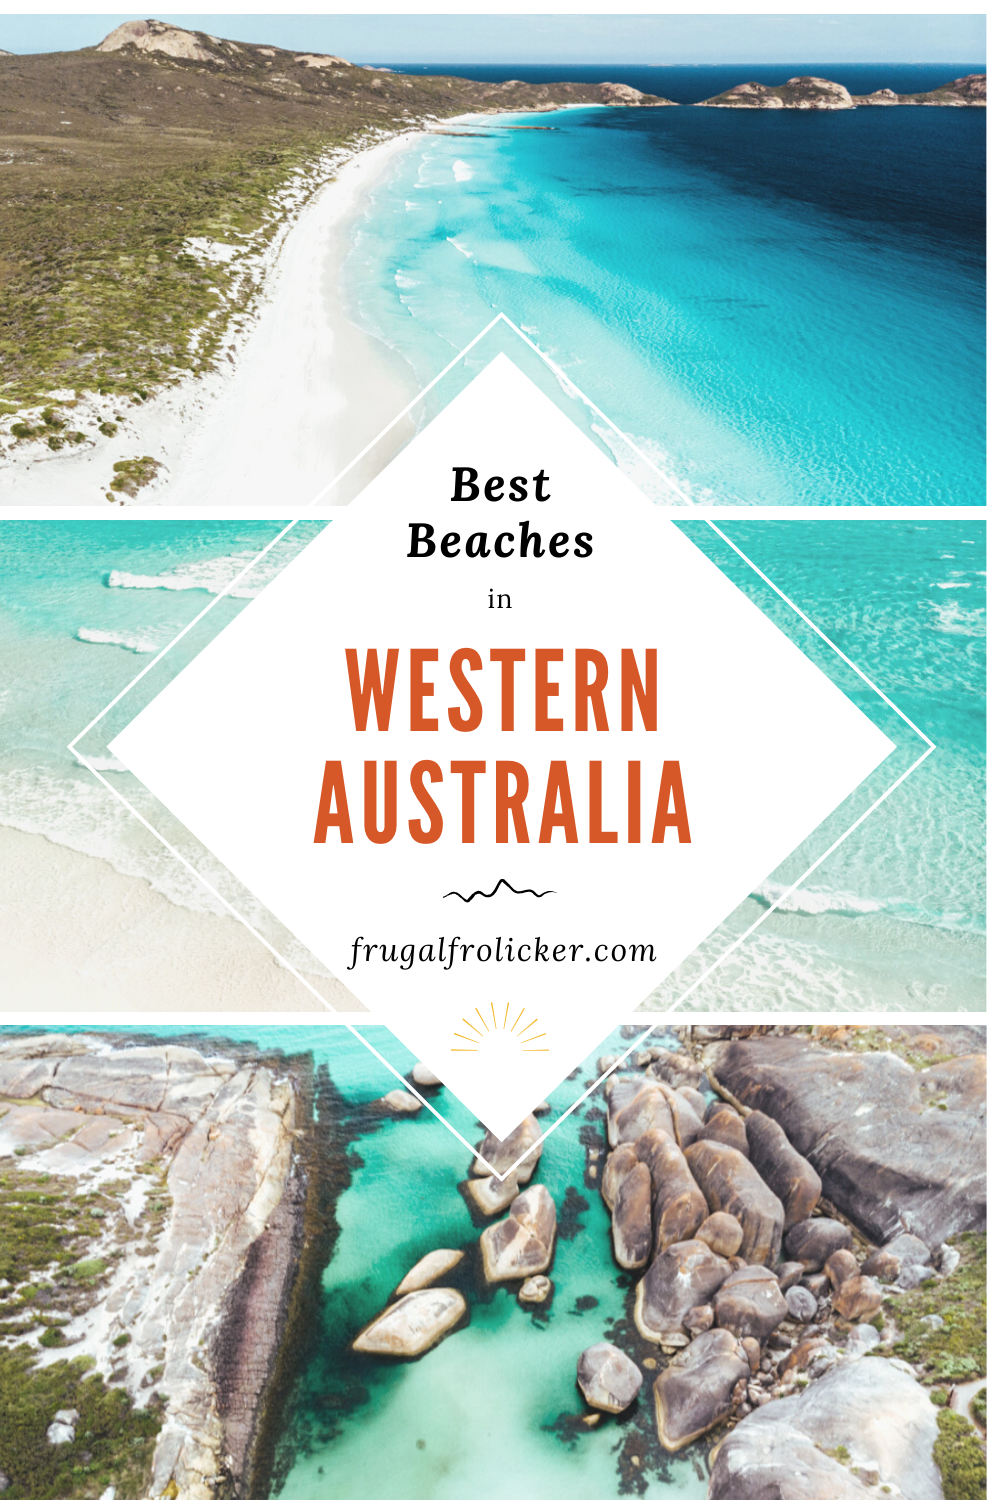 The Best Beaches in Western Australia